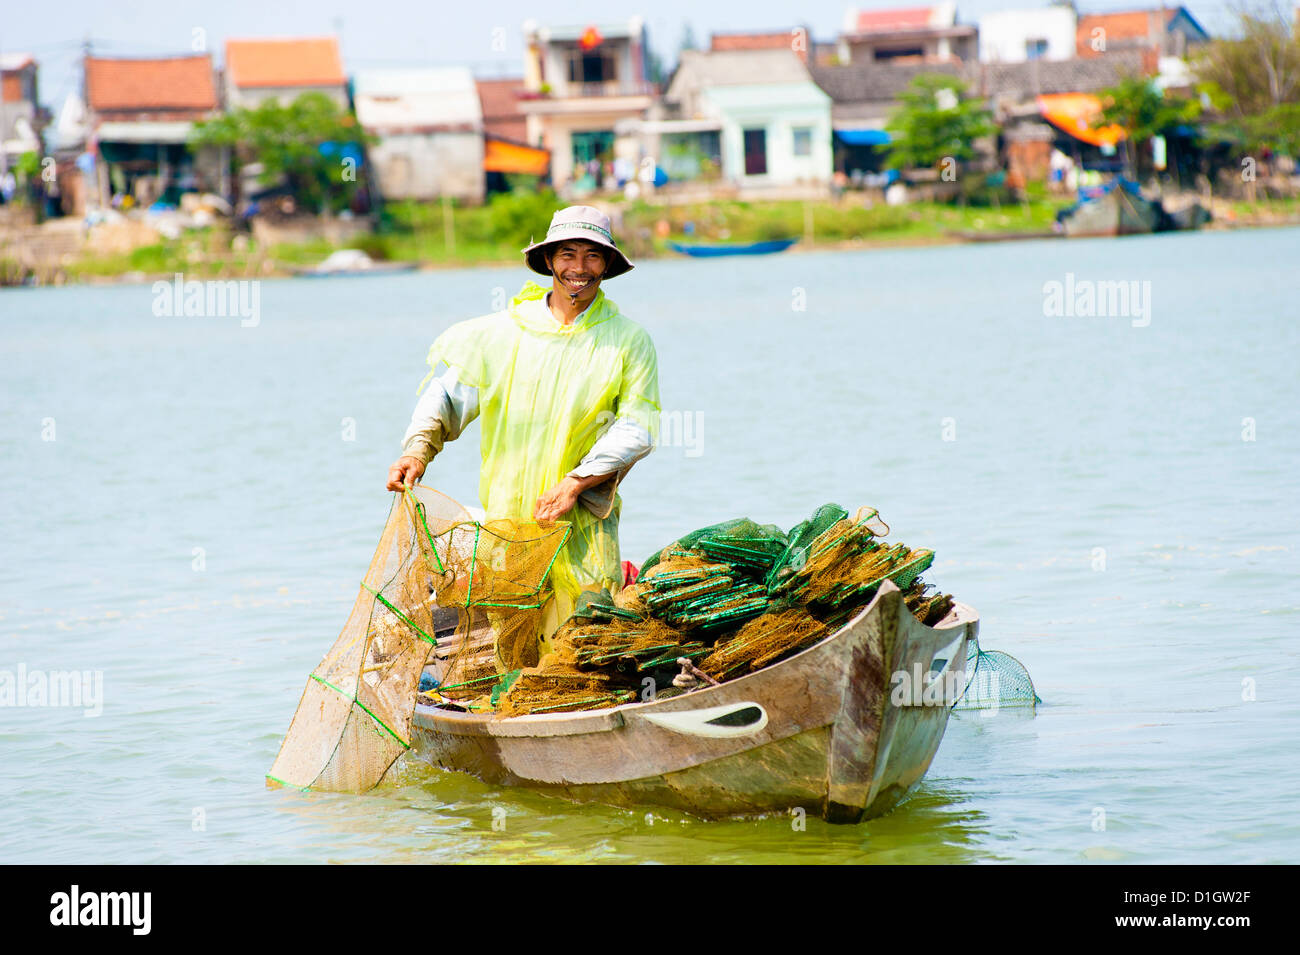 Man fishing from his boat at the old port town of Hoi An, Vietnam, Indochina, Southeast Asia, Asia - Stock Image